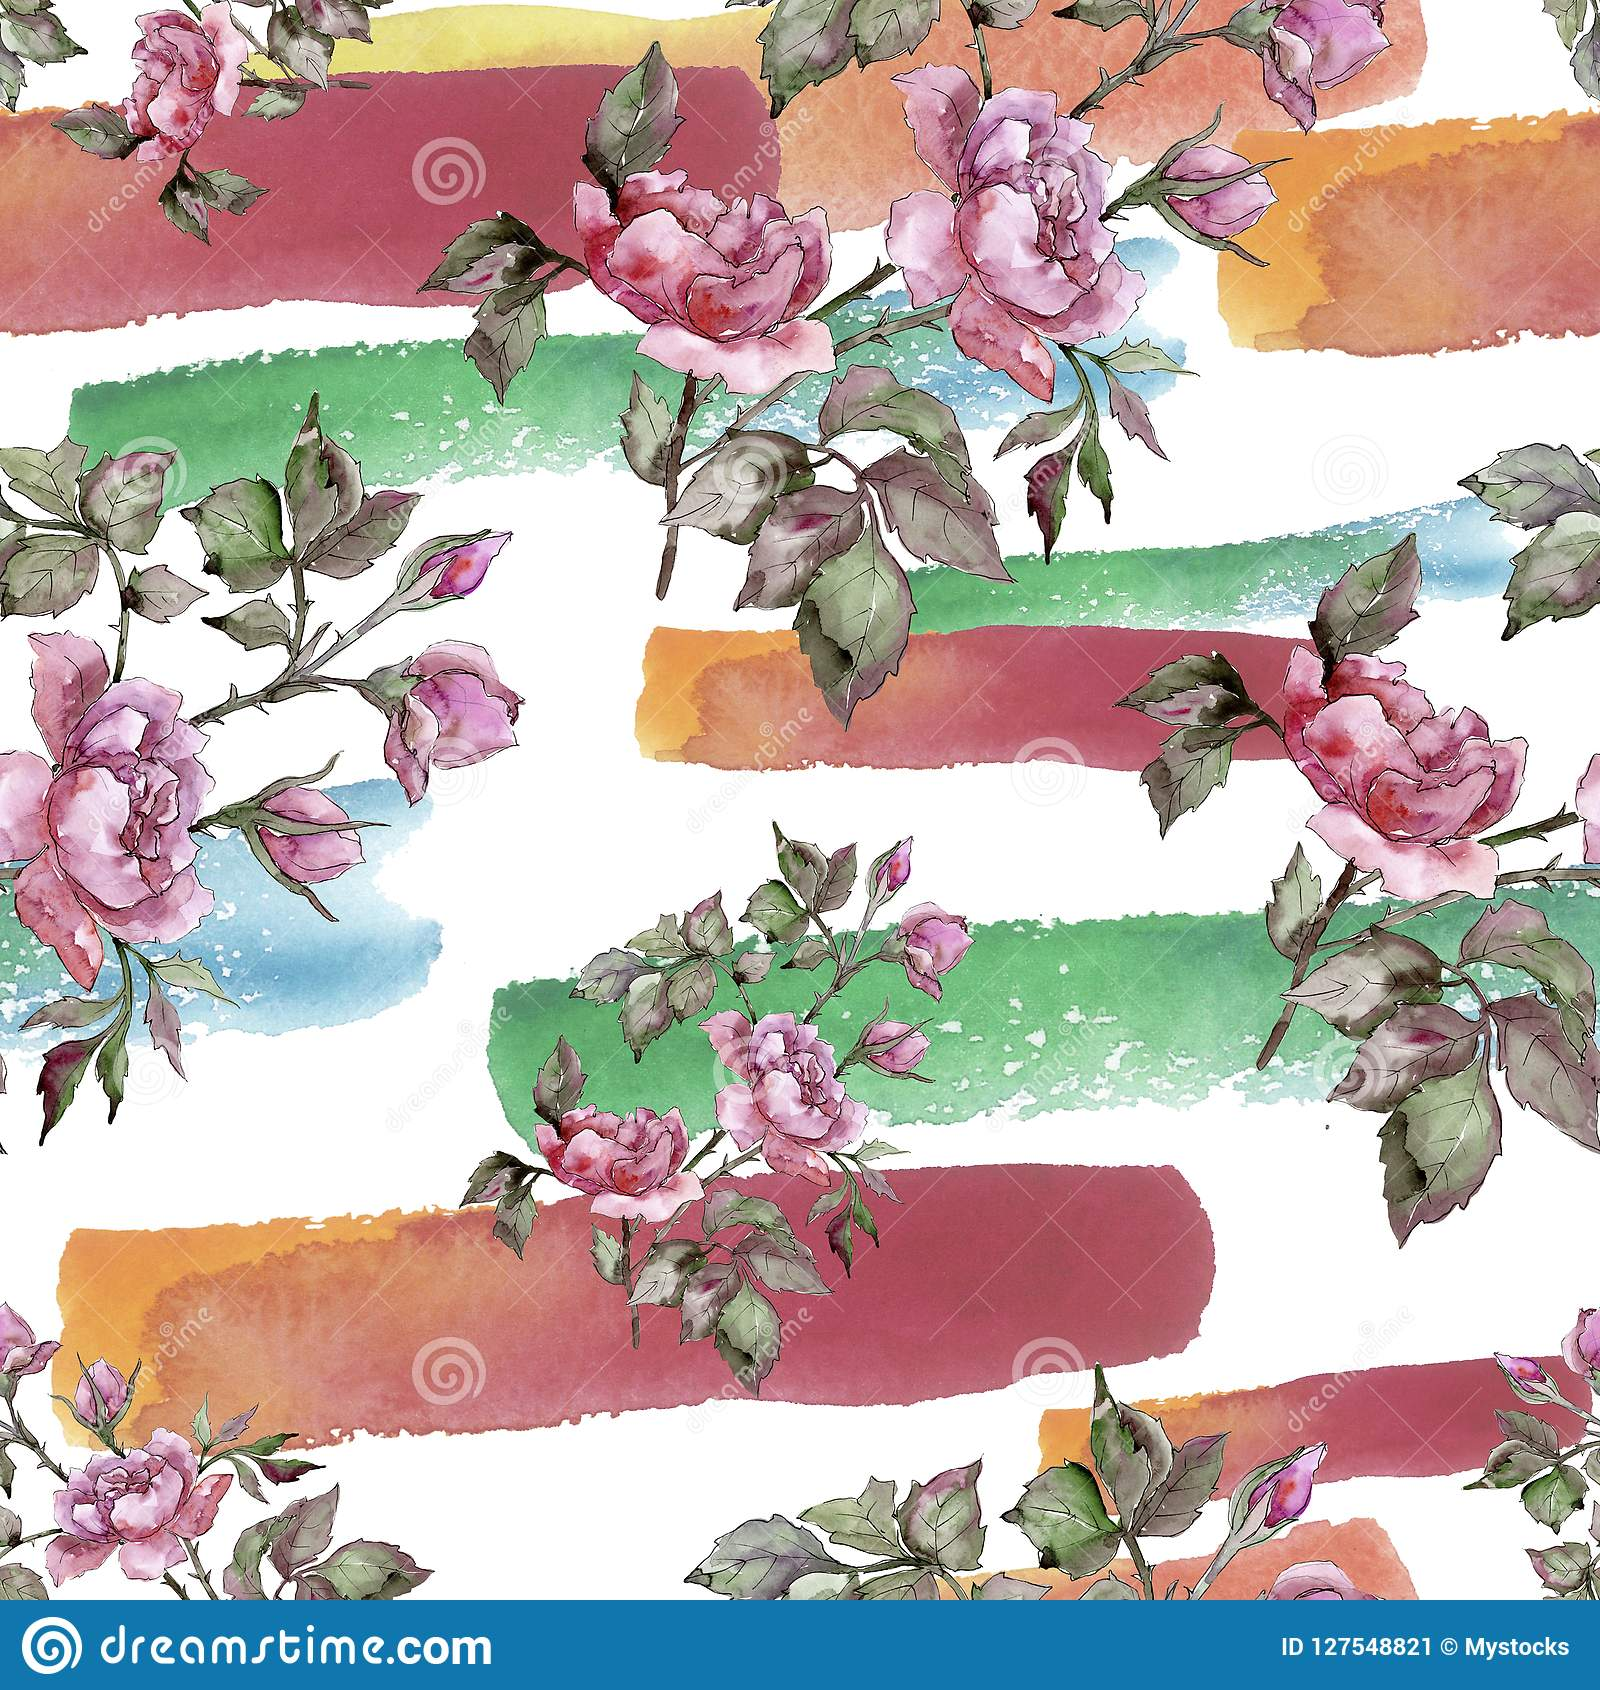 Watercolor pink bouquet peony flower. Floral botanical flower. Seamless background pattern.